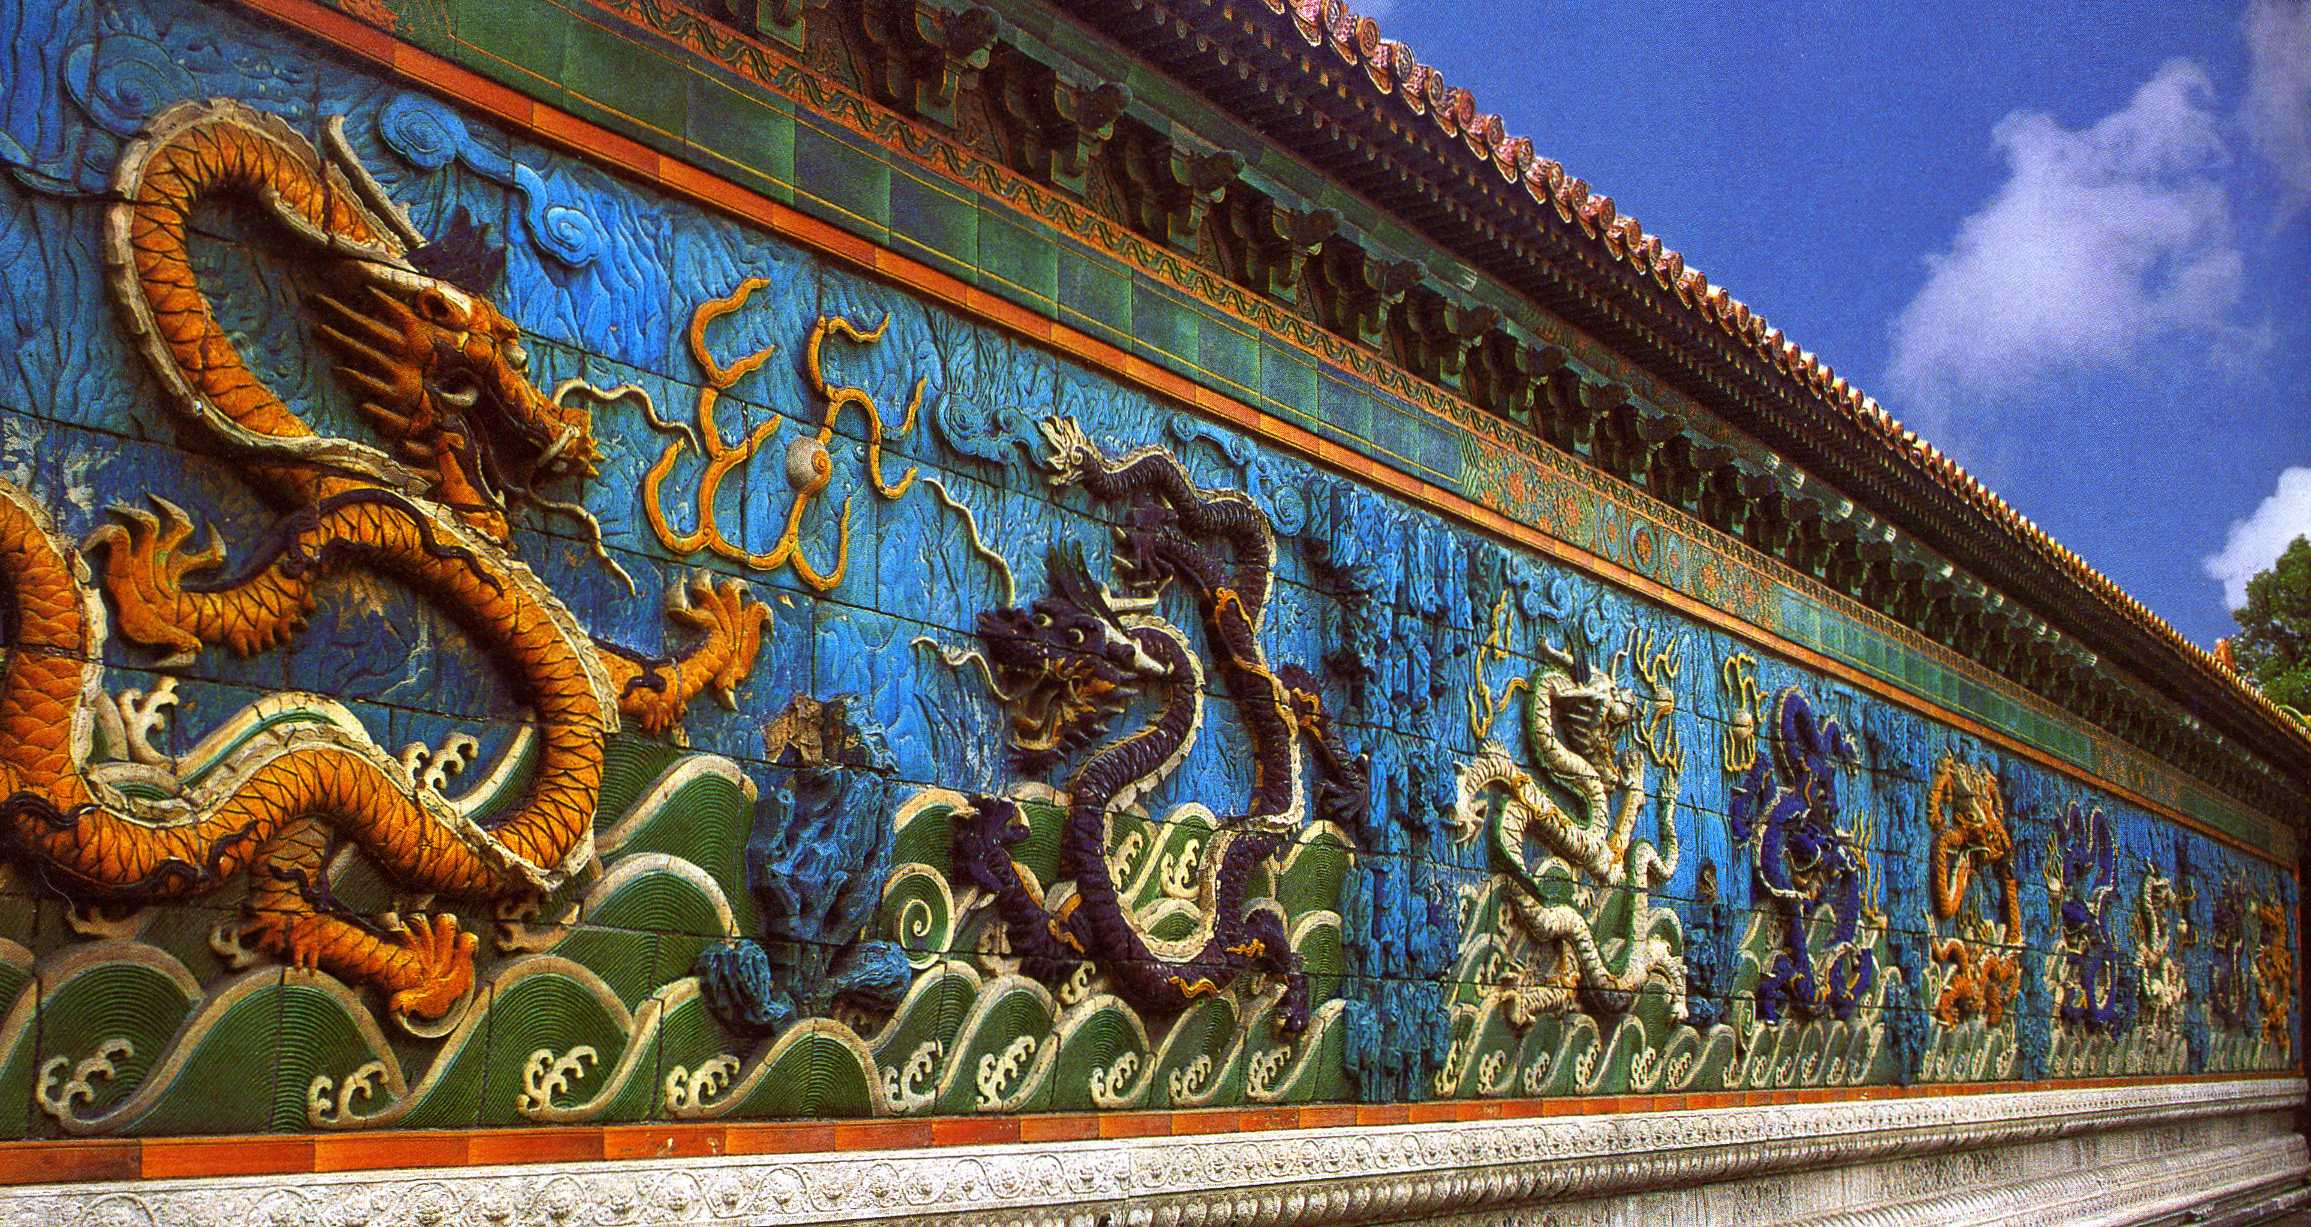 Nine Dragon Wall in the Forbidden City in Beijing, China.